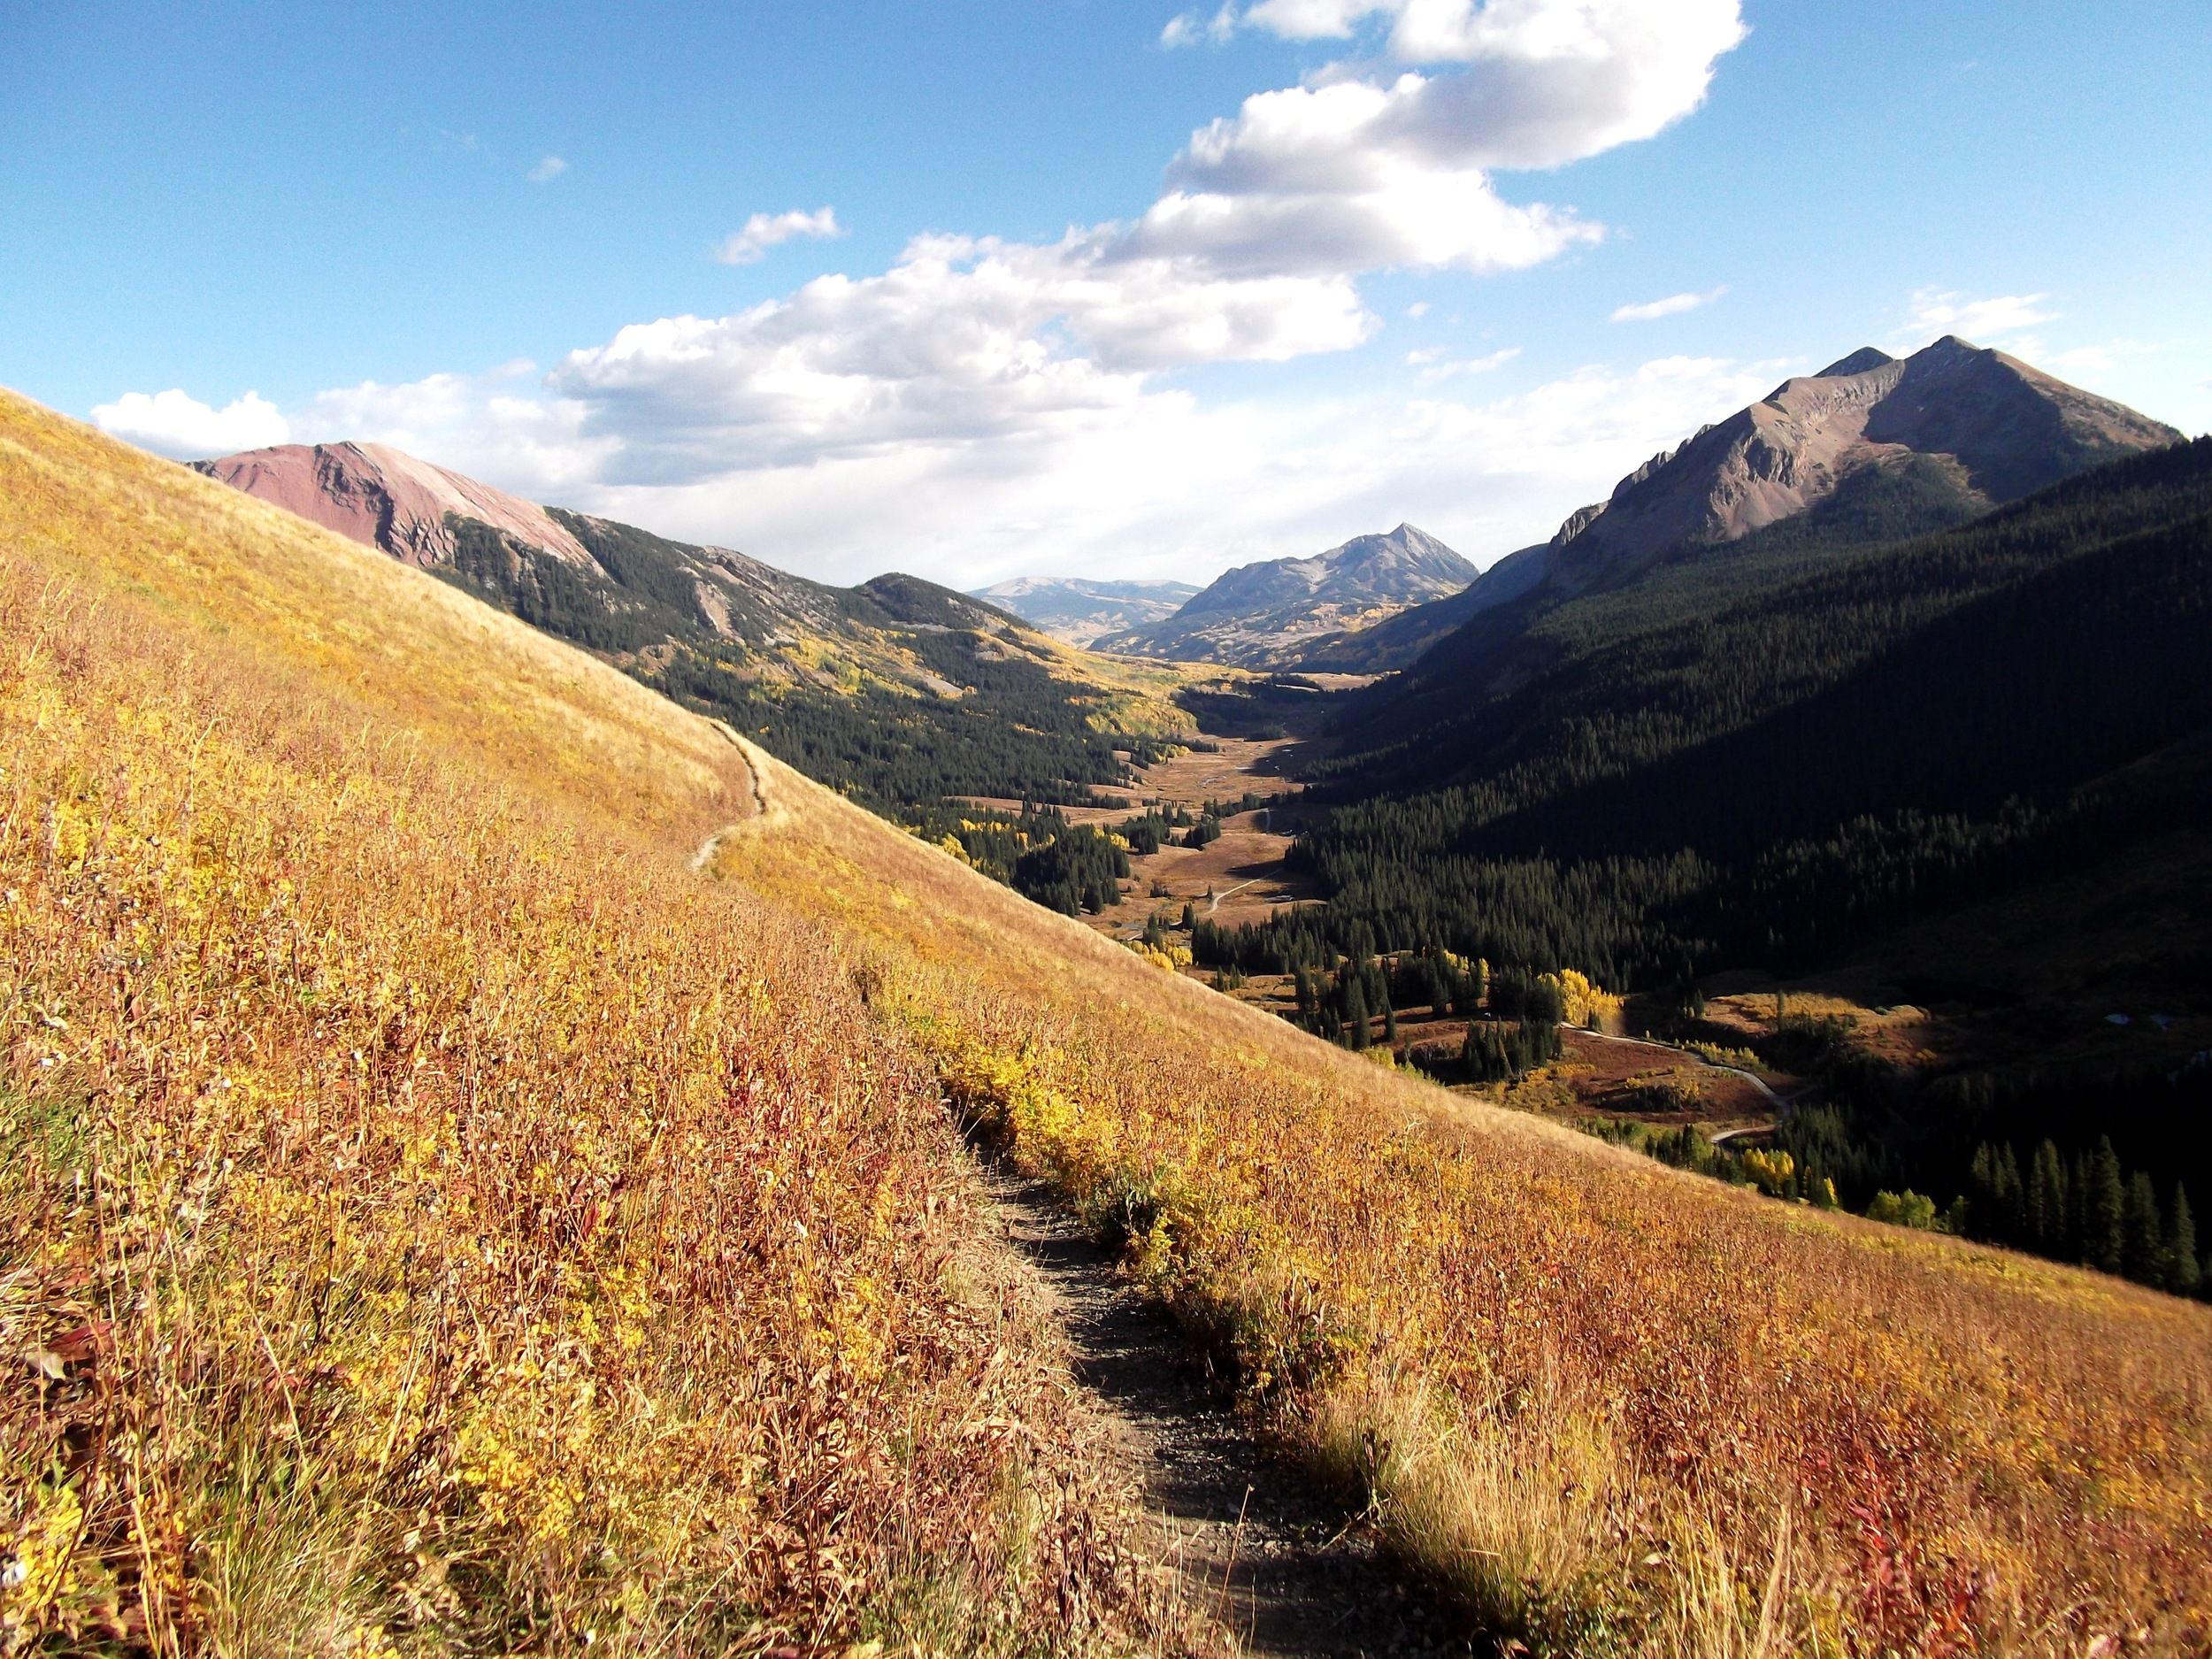 Looking down 401 trail in Crested Butte, CO